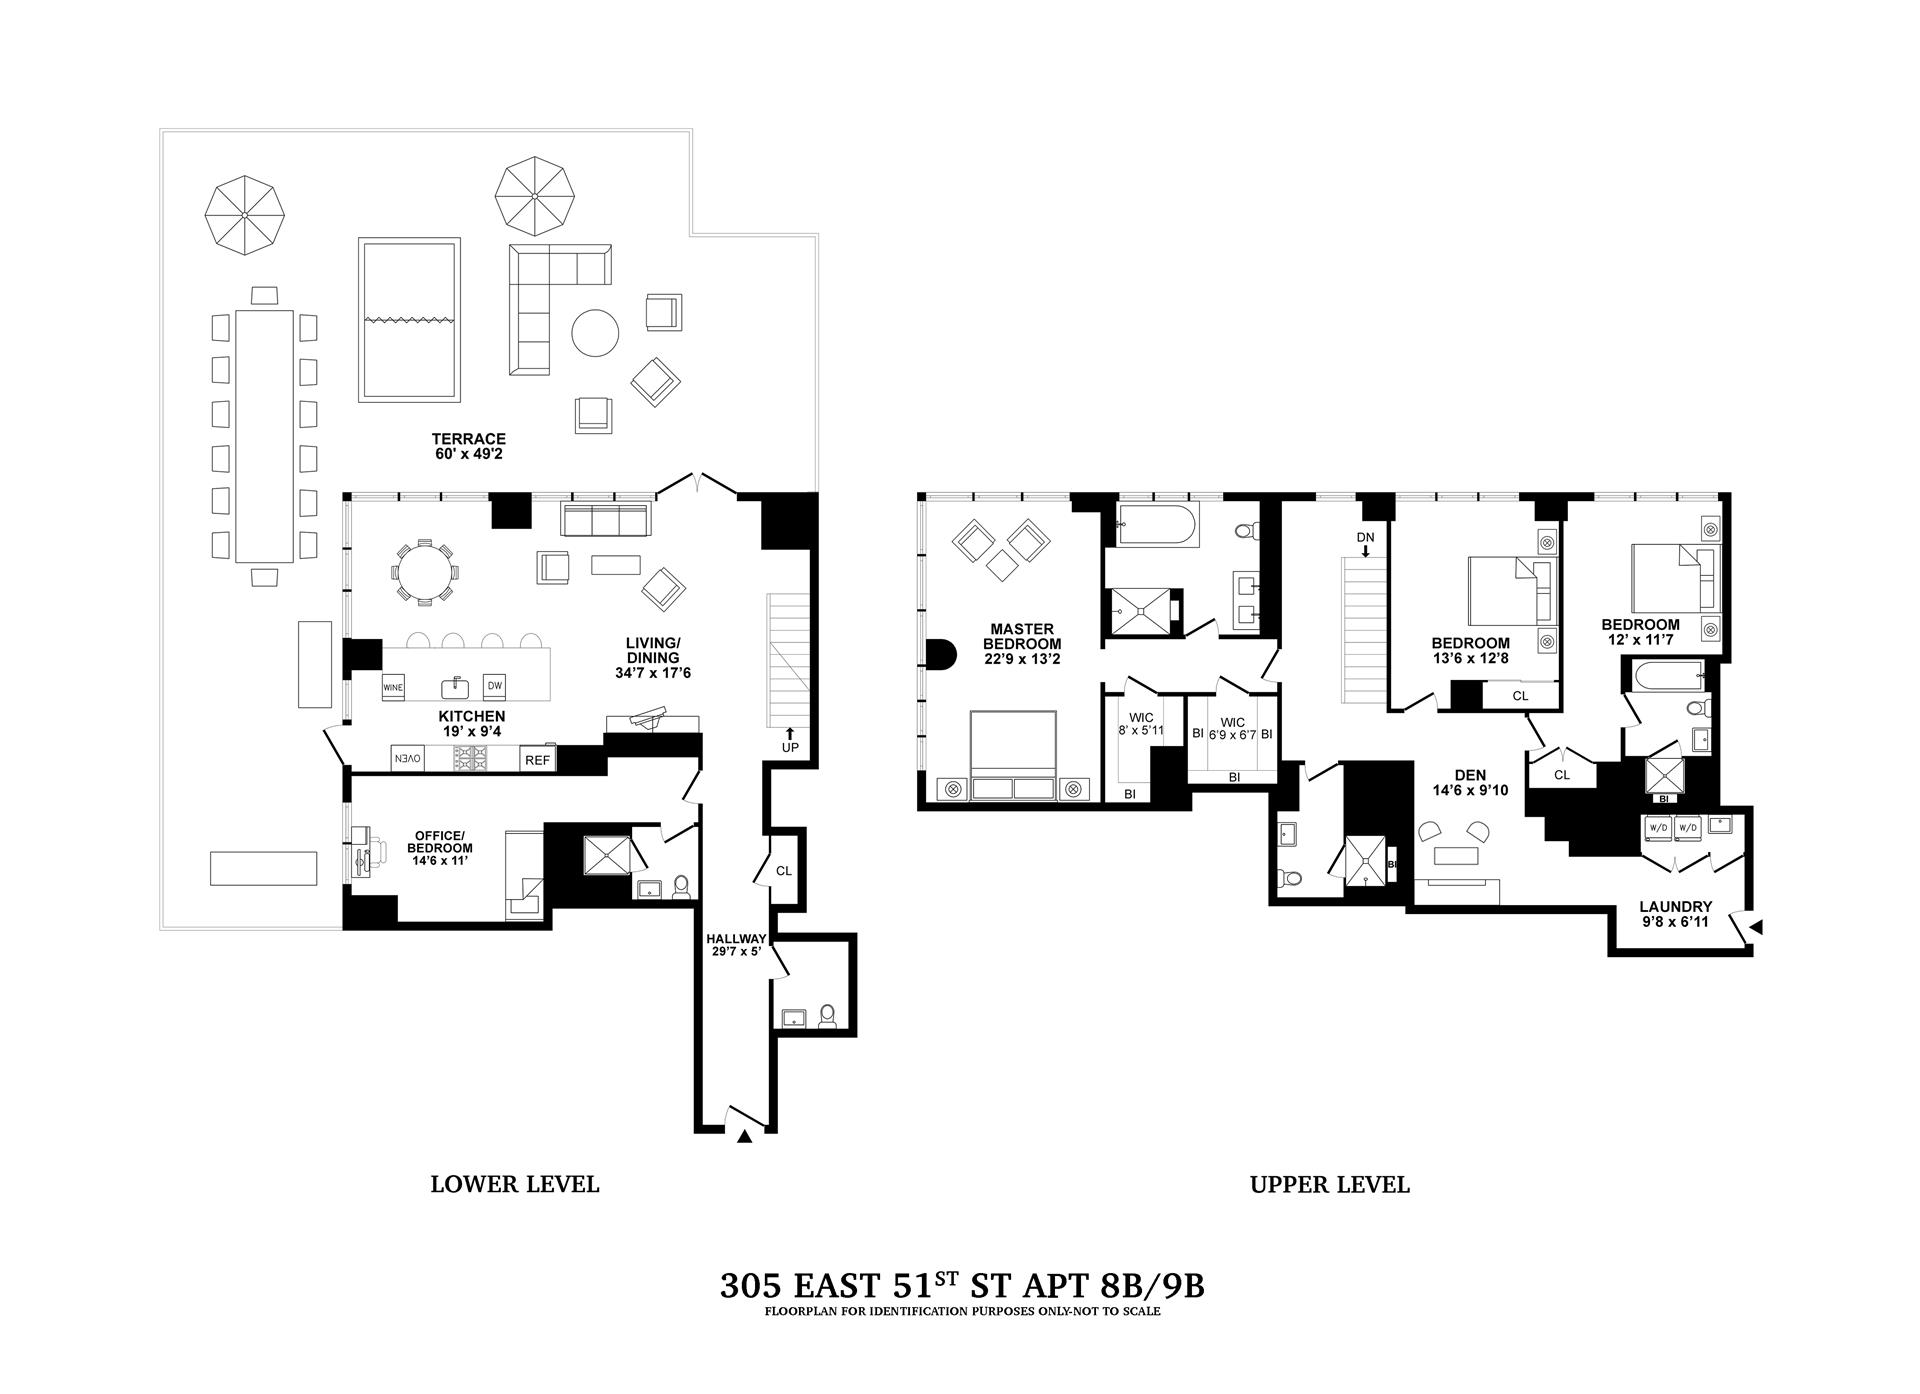 Floor plan of Halcyon, 305 East 51st St, 8B/9B - Turtle Bay, New York